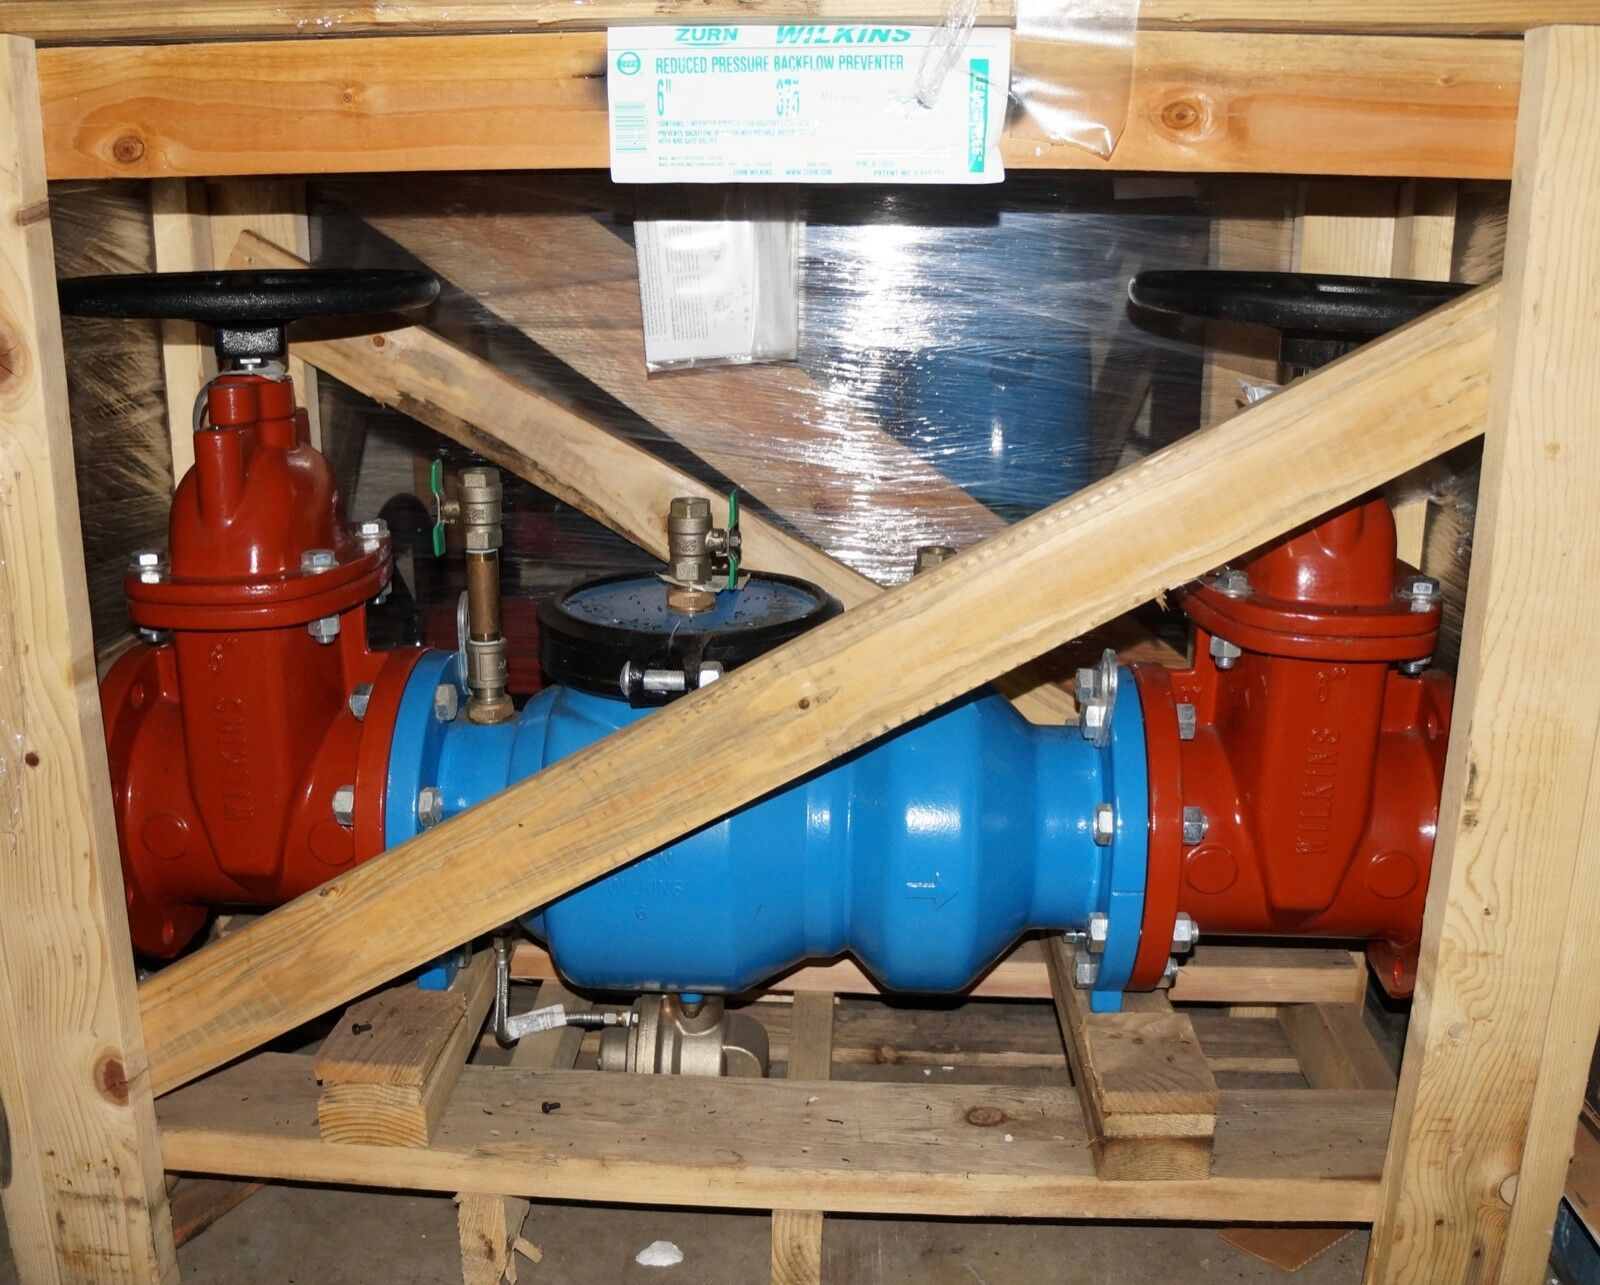 Details about New Zurn Wilkins 6 in  Reduced Pressure Principle Backflow  Preventer 6-375